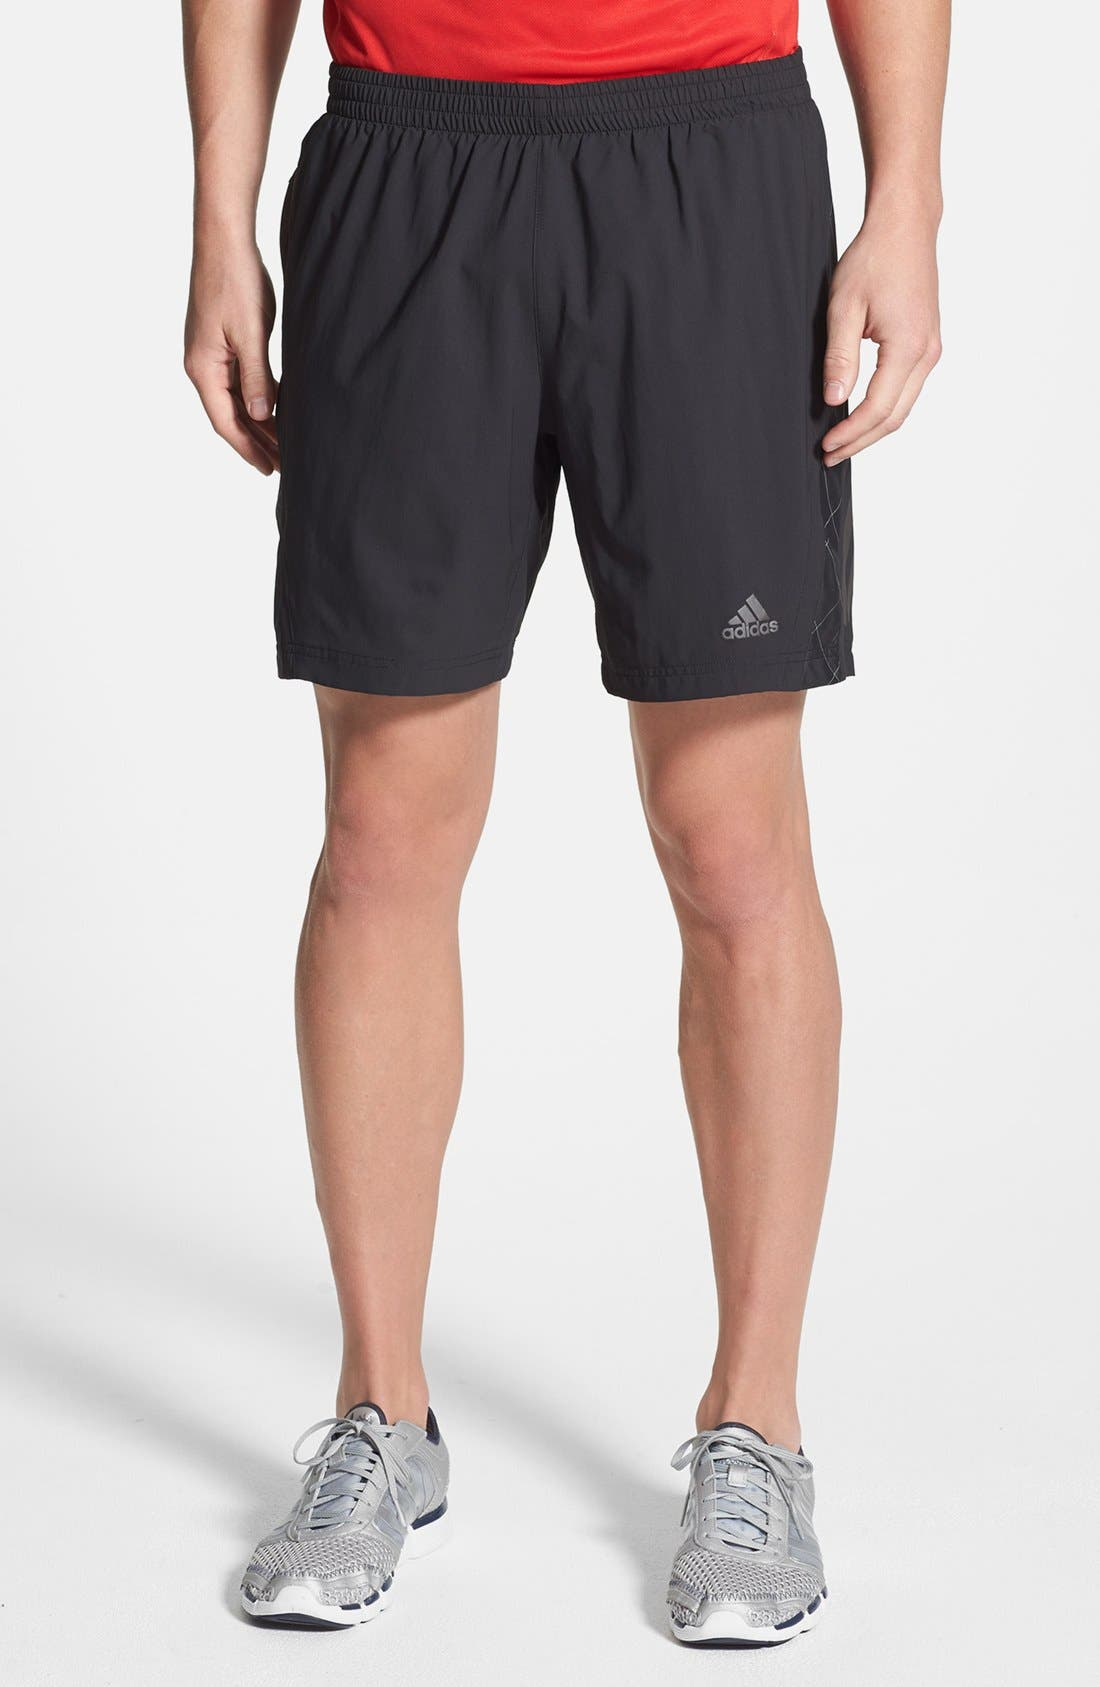 Alternate Image 1 Selected - adidas 'Supernova' Shorts